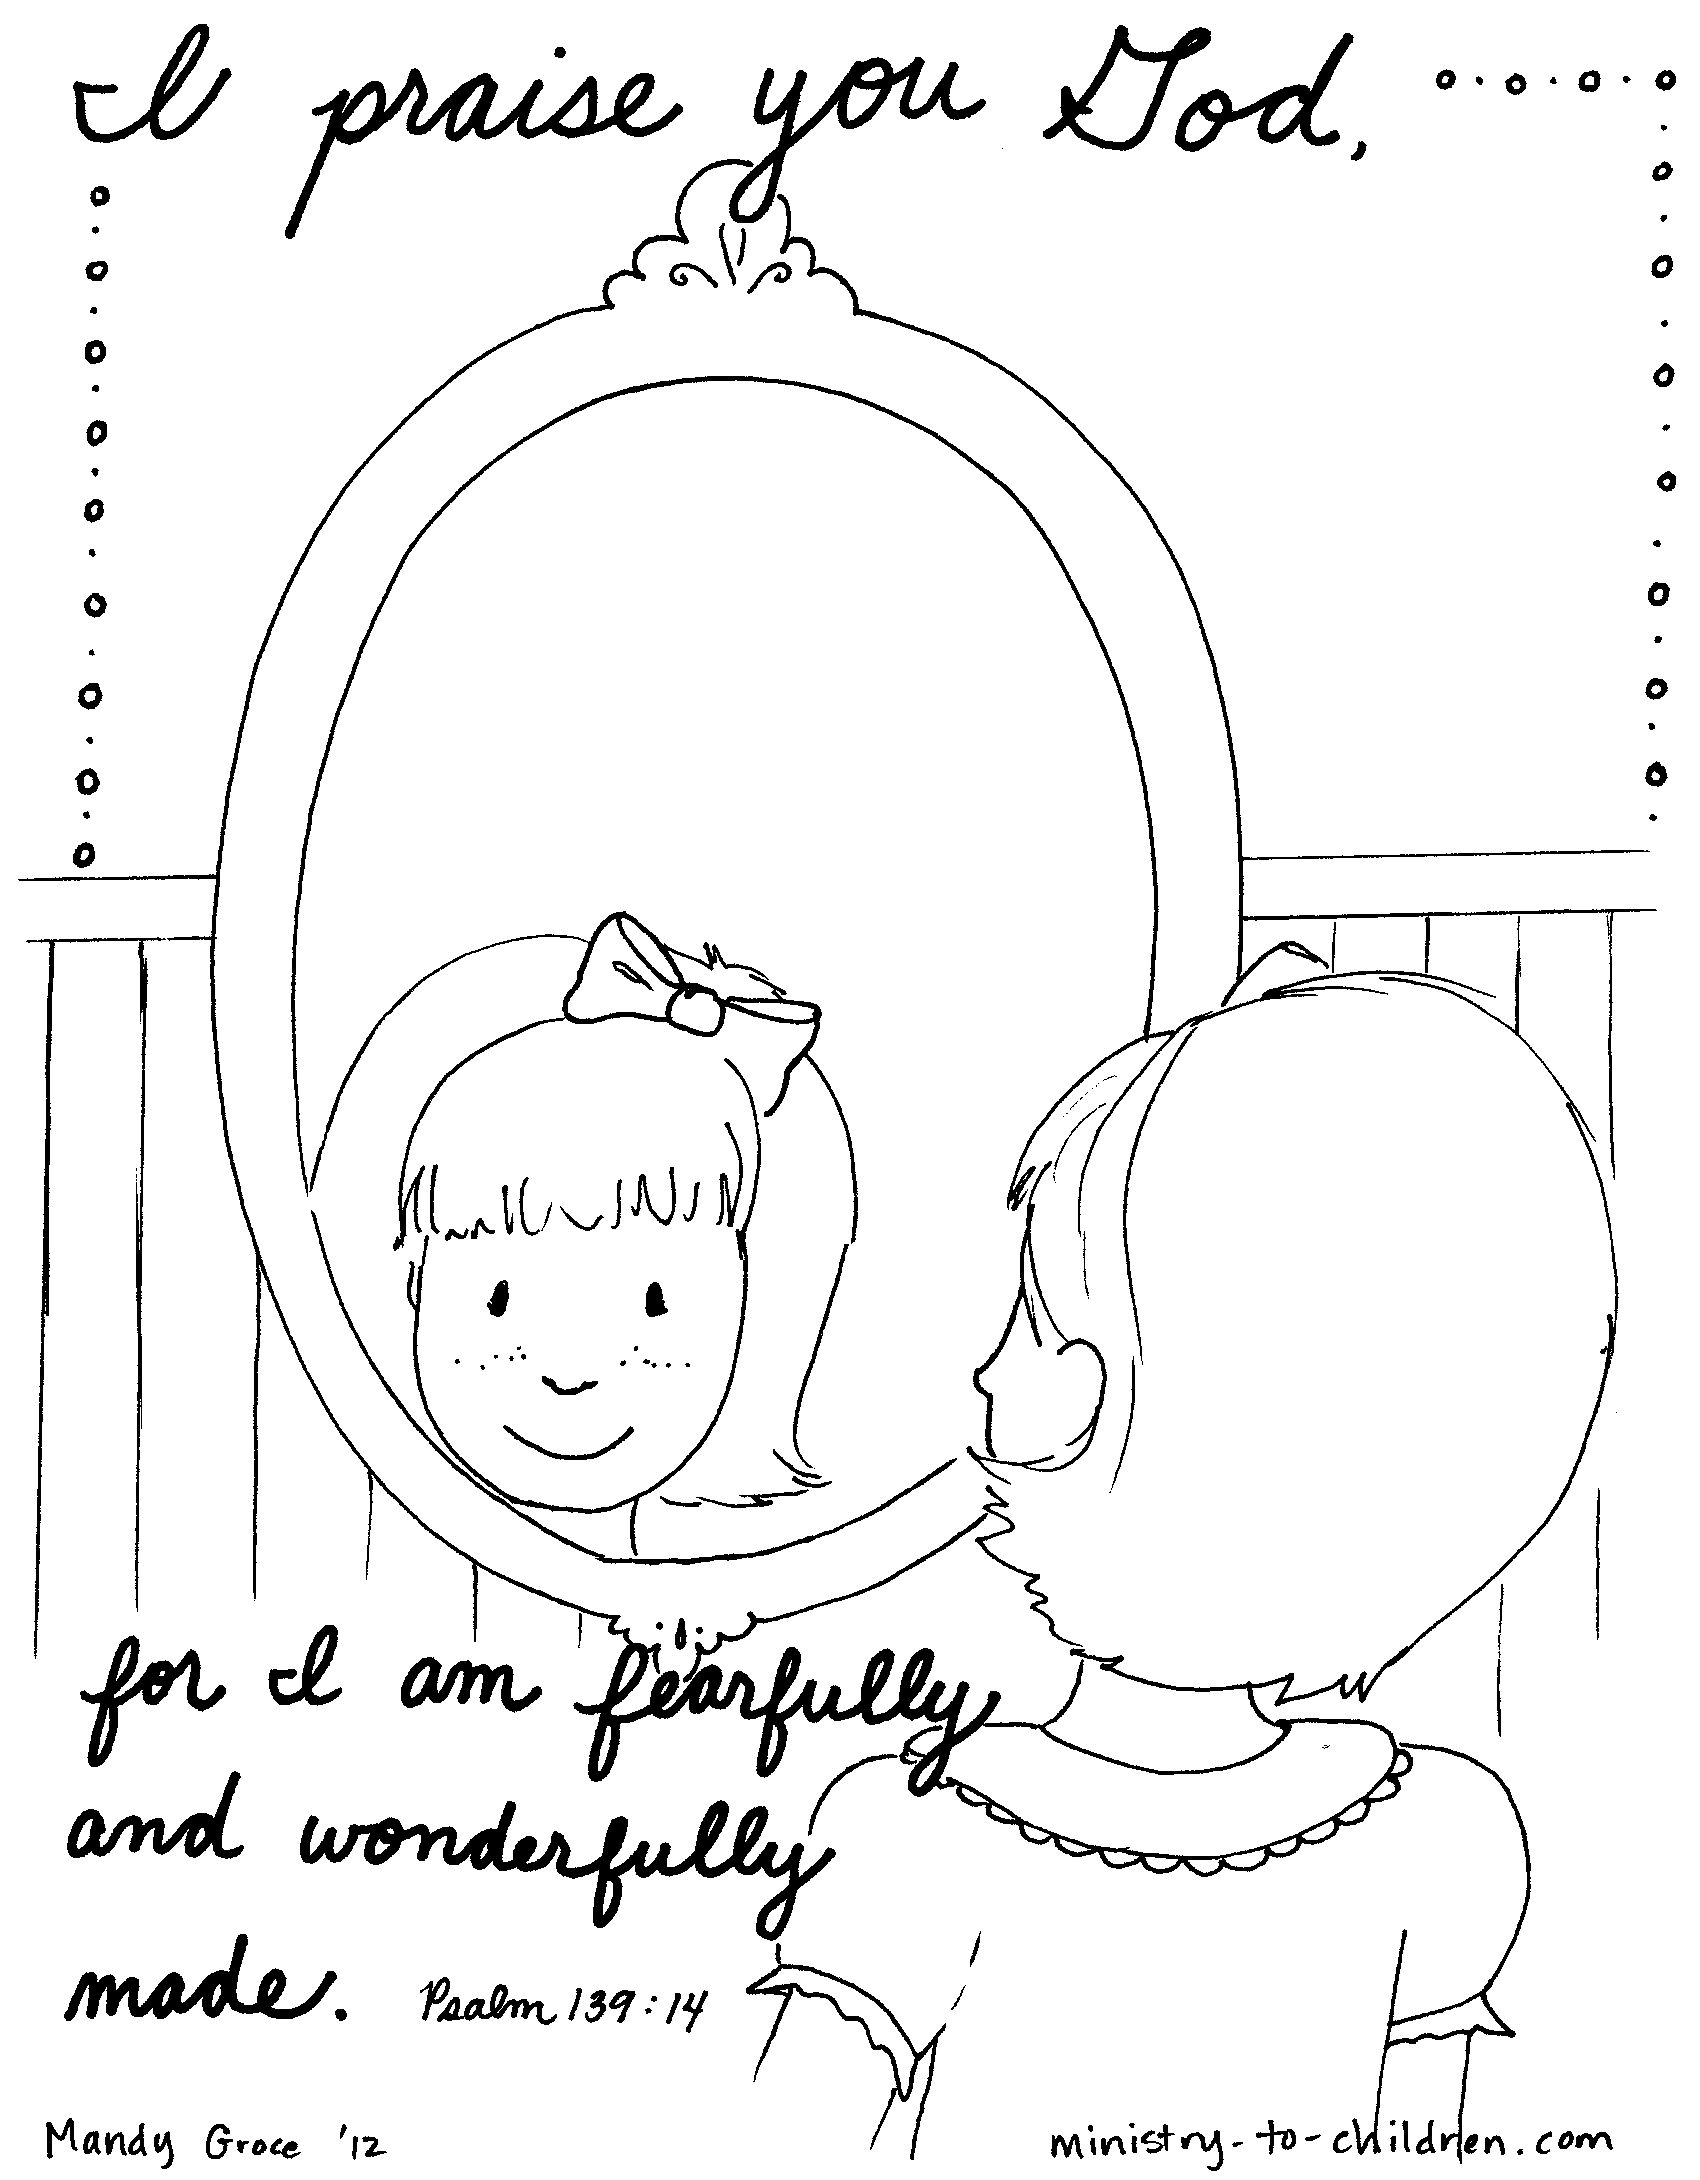 psalm 139 14 coloring pages barat pinterest psalm 139 14